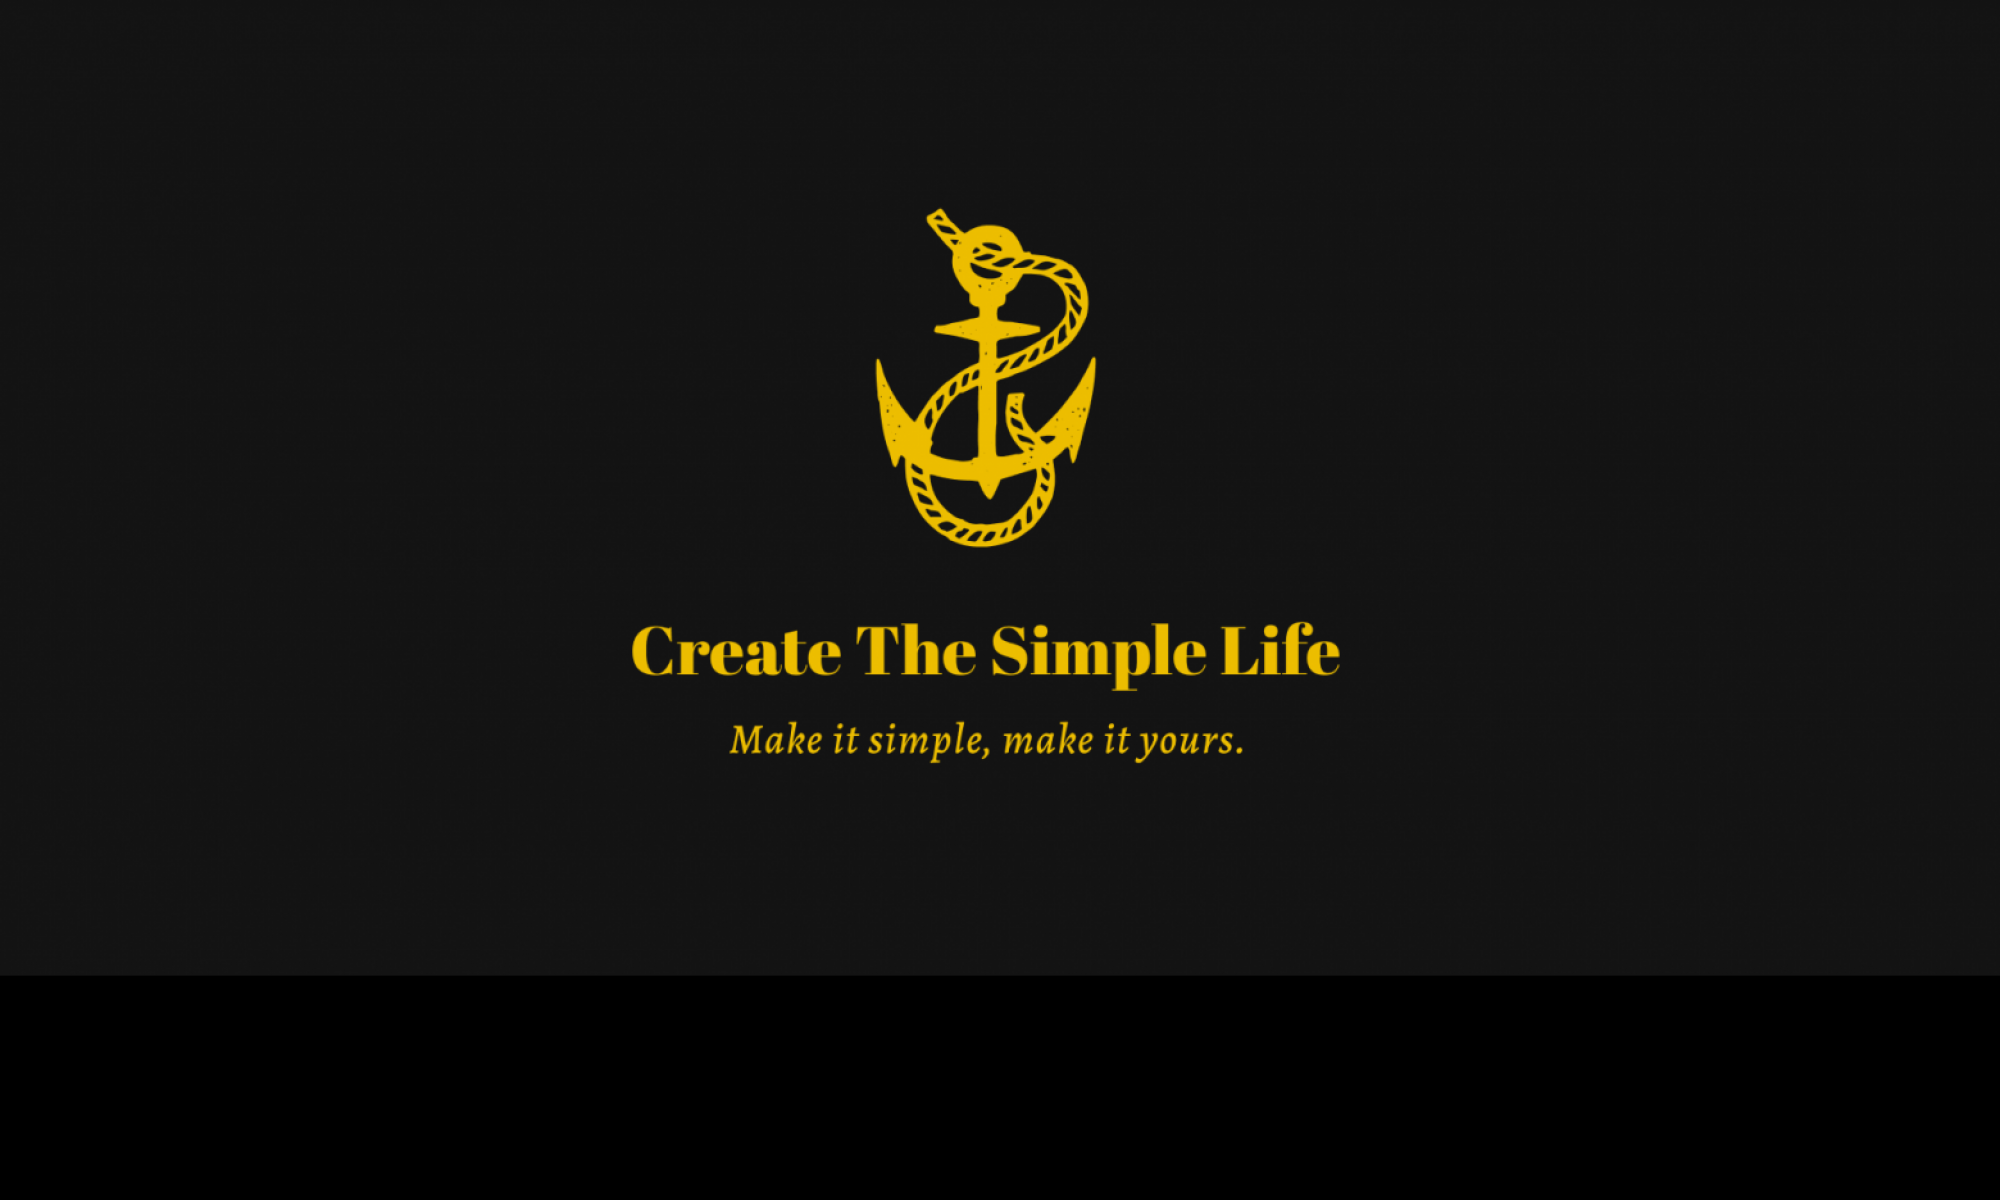 3ae06bf86d6c8 Welcome to create the simple life - THE MOST SIMPLE THINGS CAN BRING ...